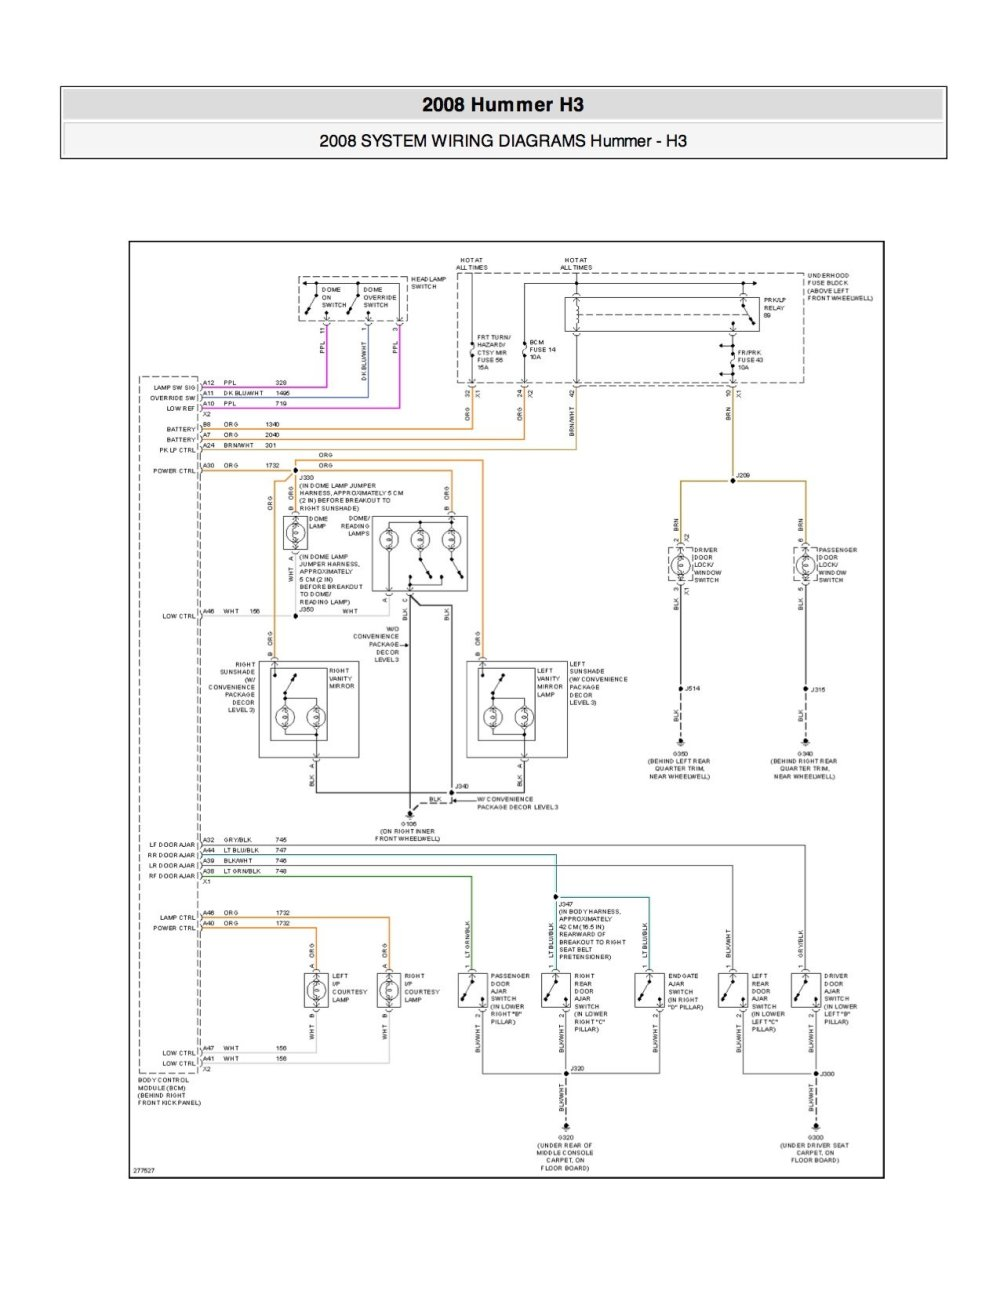 medium resolution of fuse location hummer forums enthusiast forum for hummer owners h3 fuse diagram